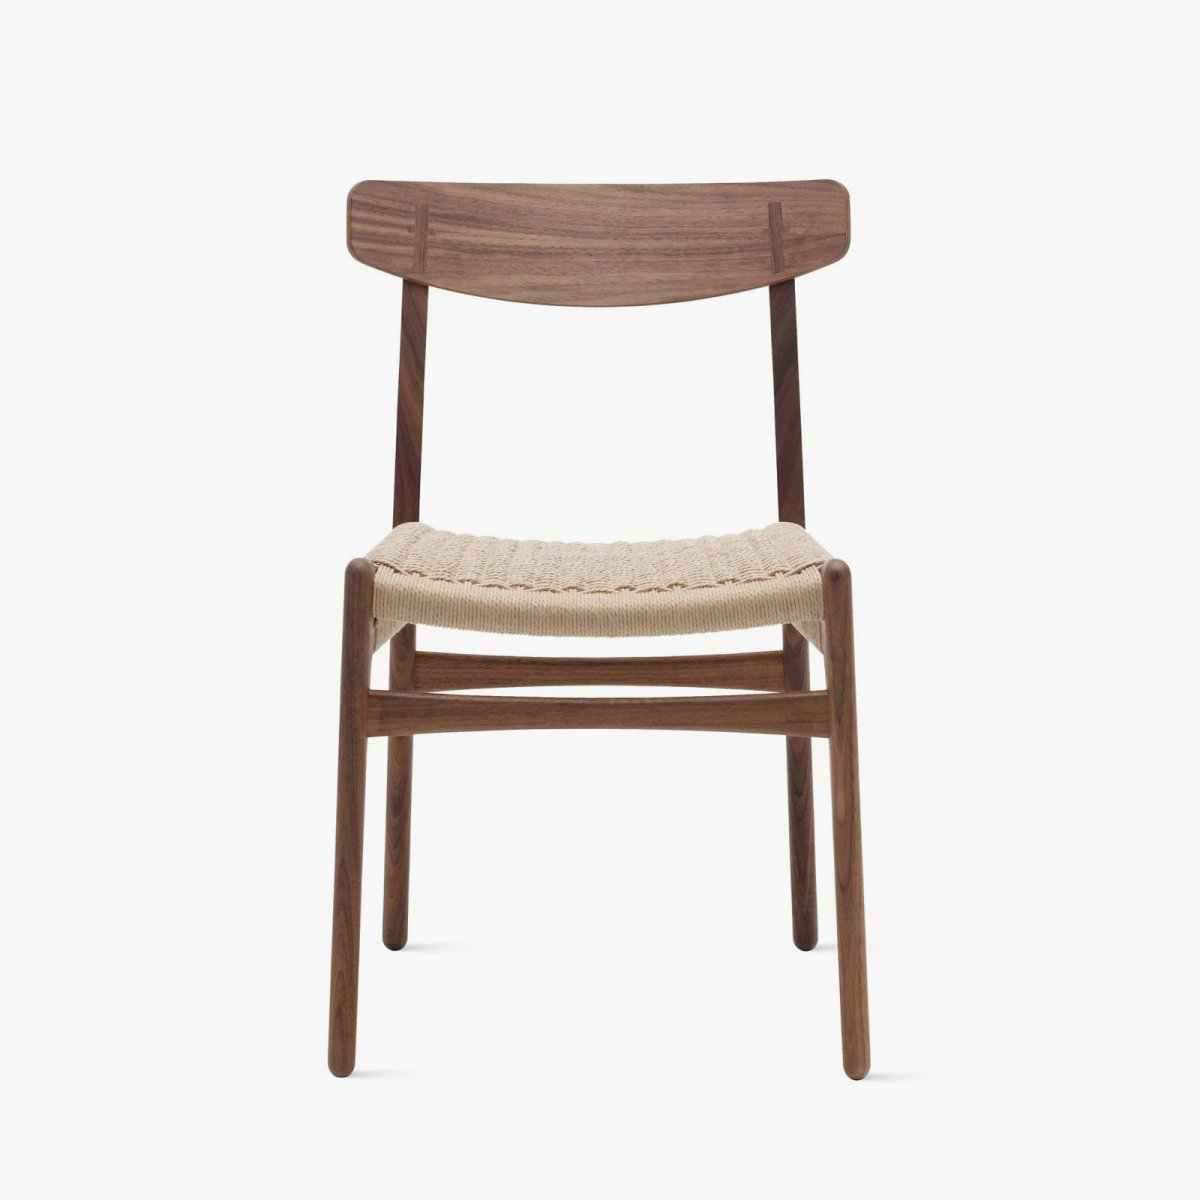 CH23 Chair, walnut, front view.